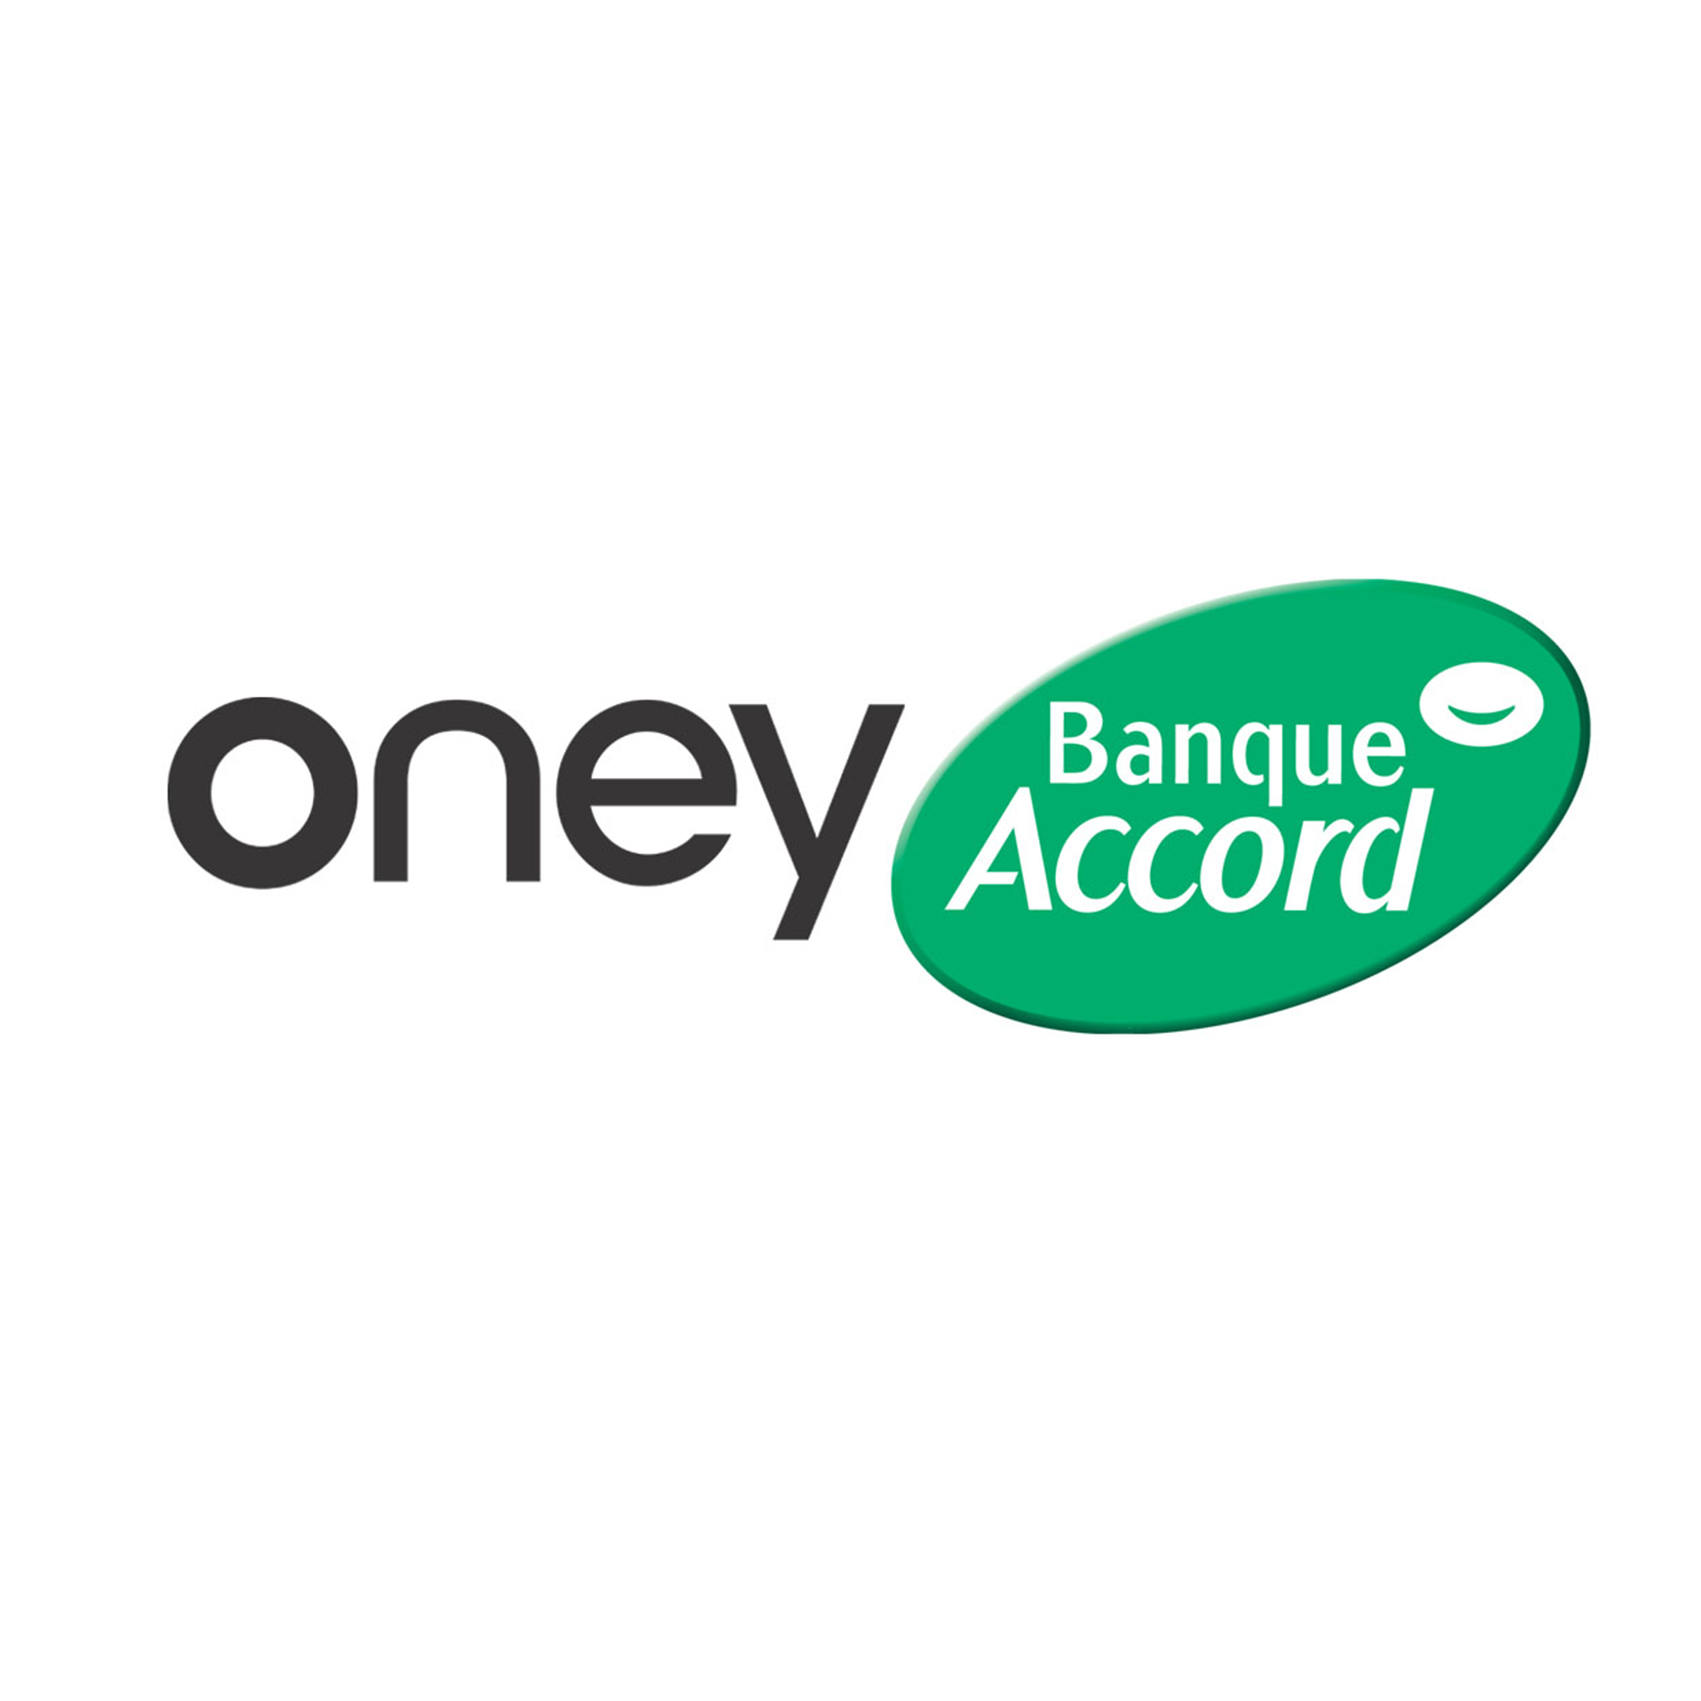 Comment contacter la Banque Accord ONEY ?